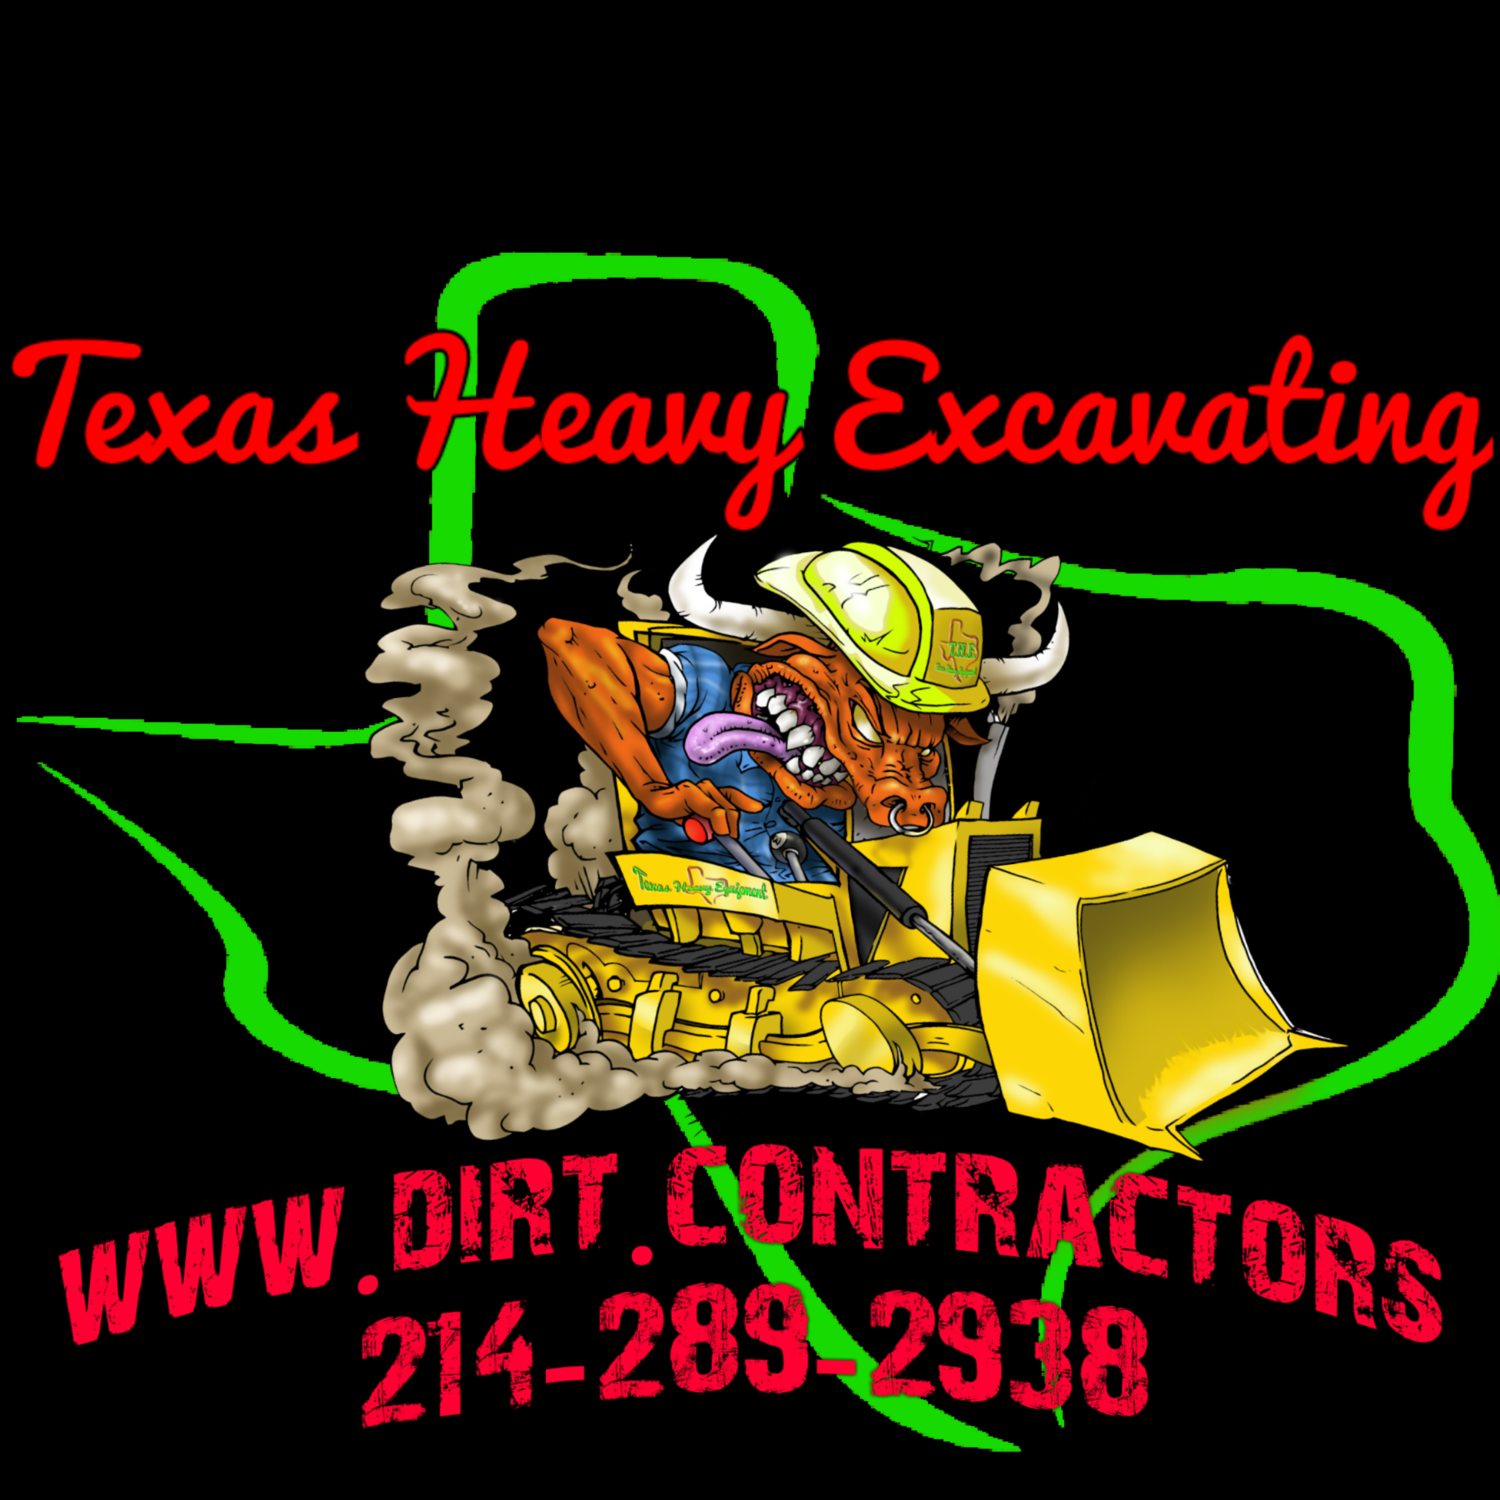 Texas Heavy Excavating